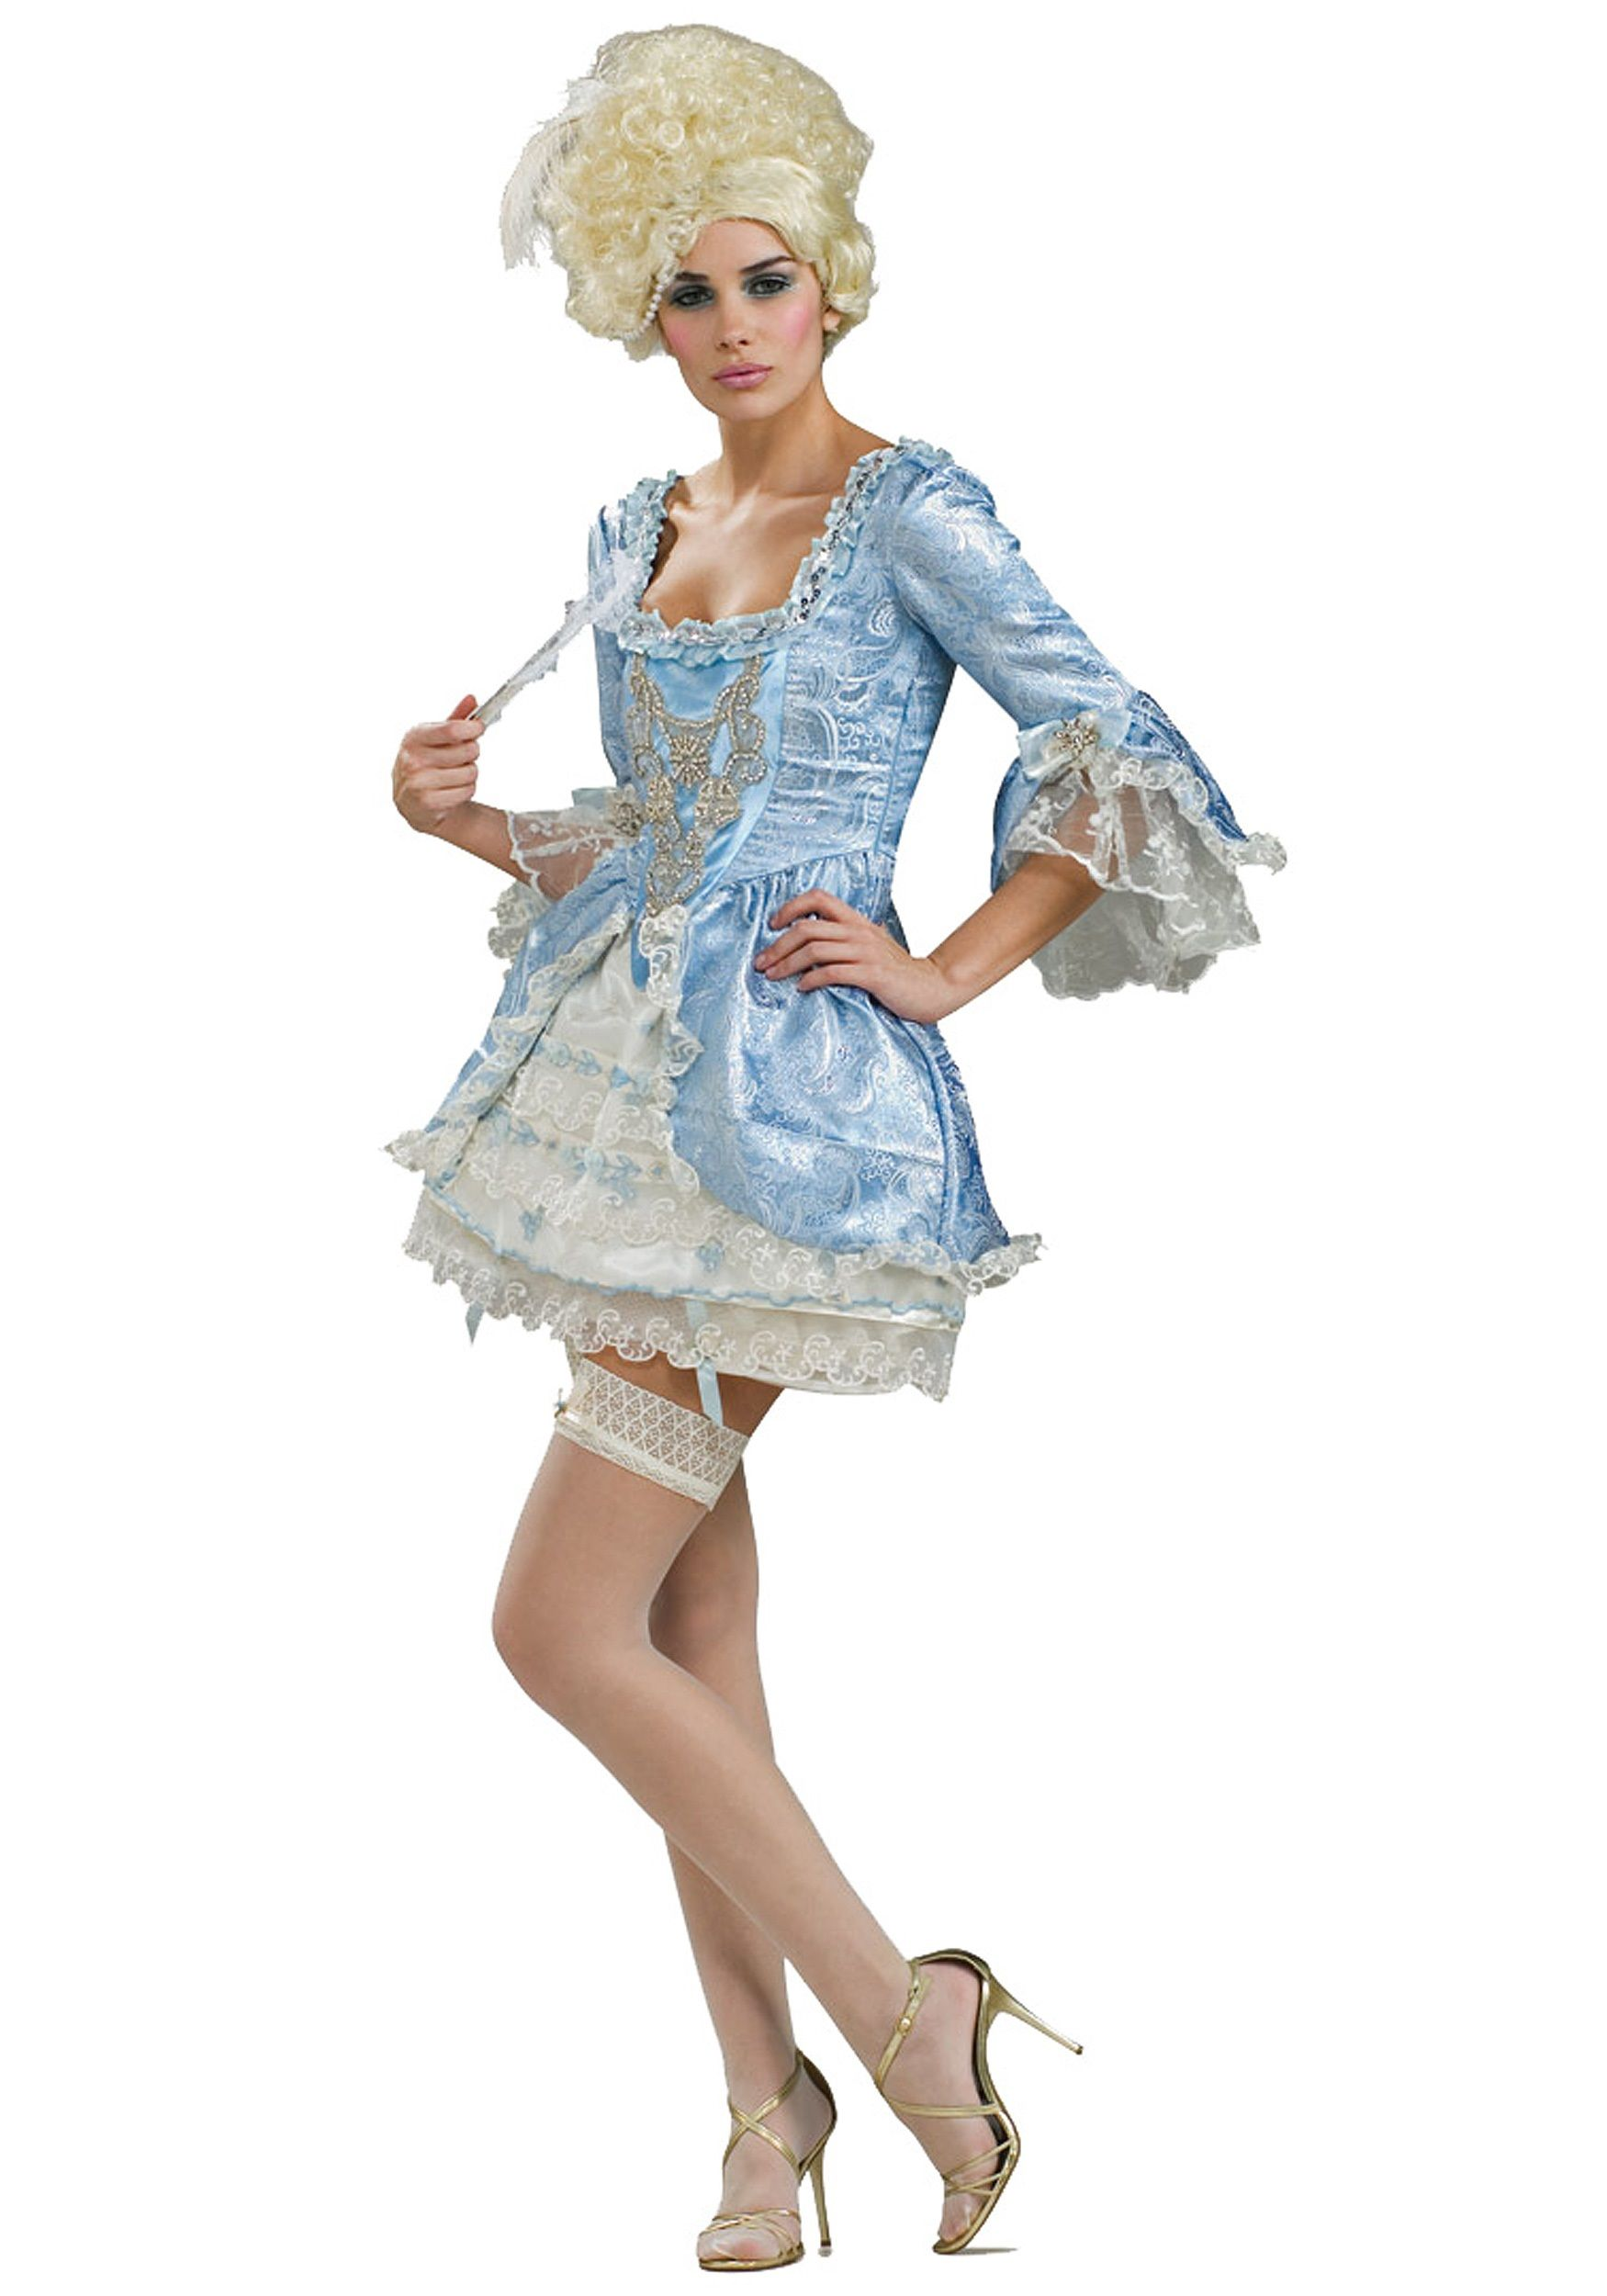 marie antonnette dresses | Sexy Marie Antoinette Costume - Naughty French  Queen Costume Dress